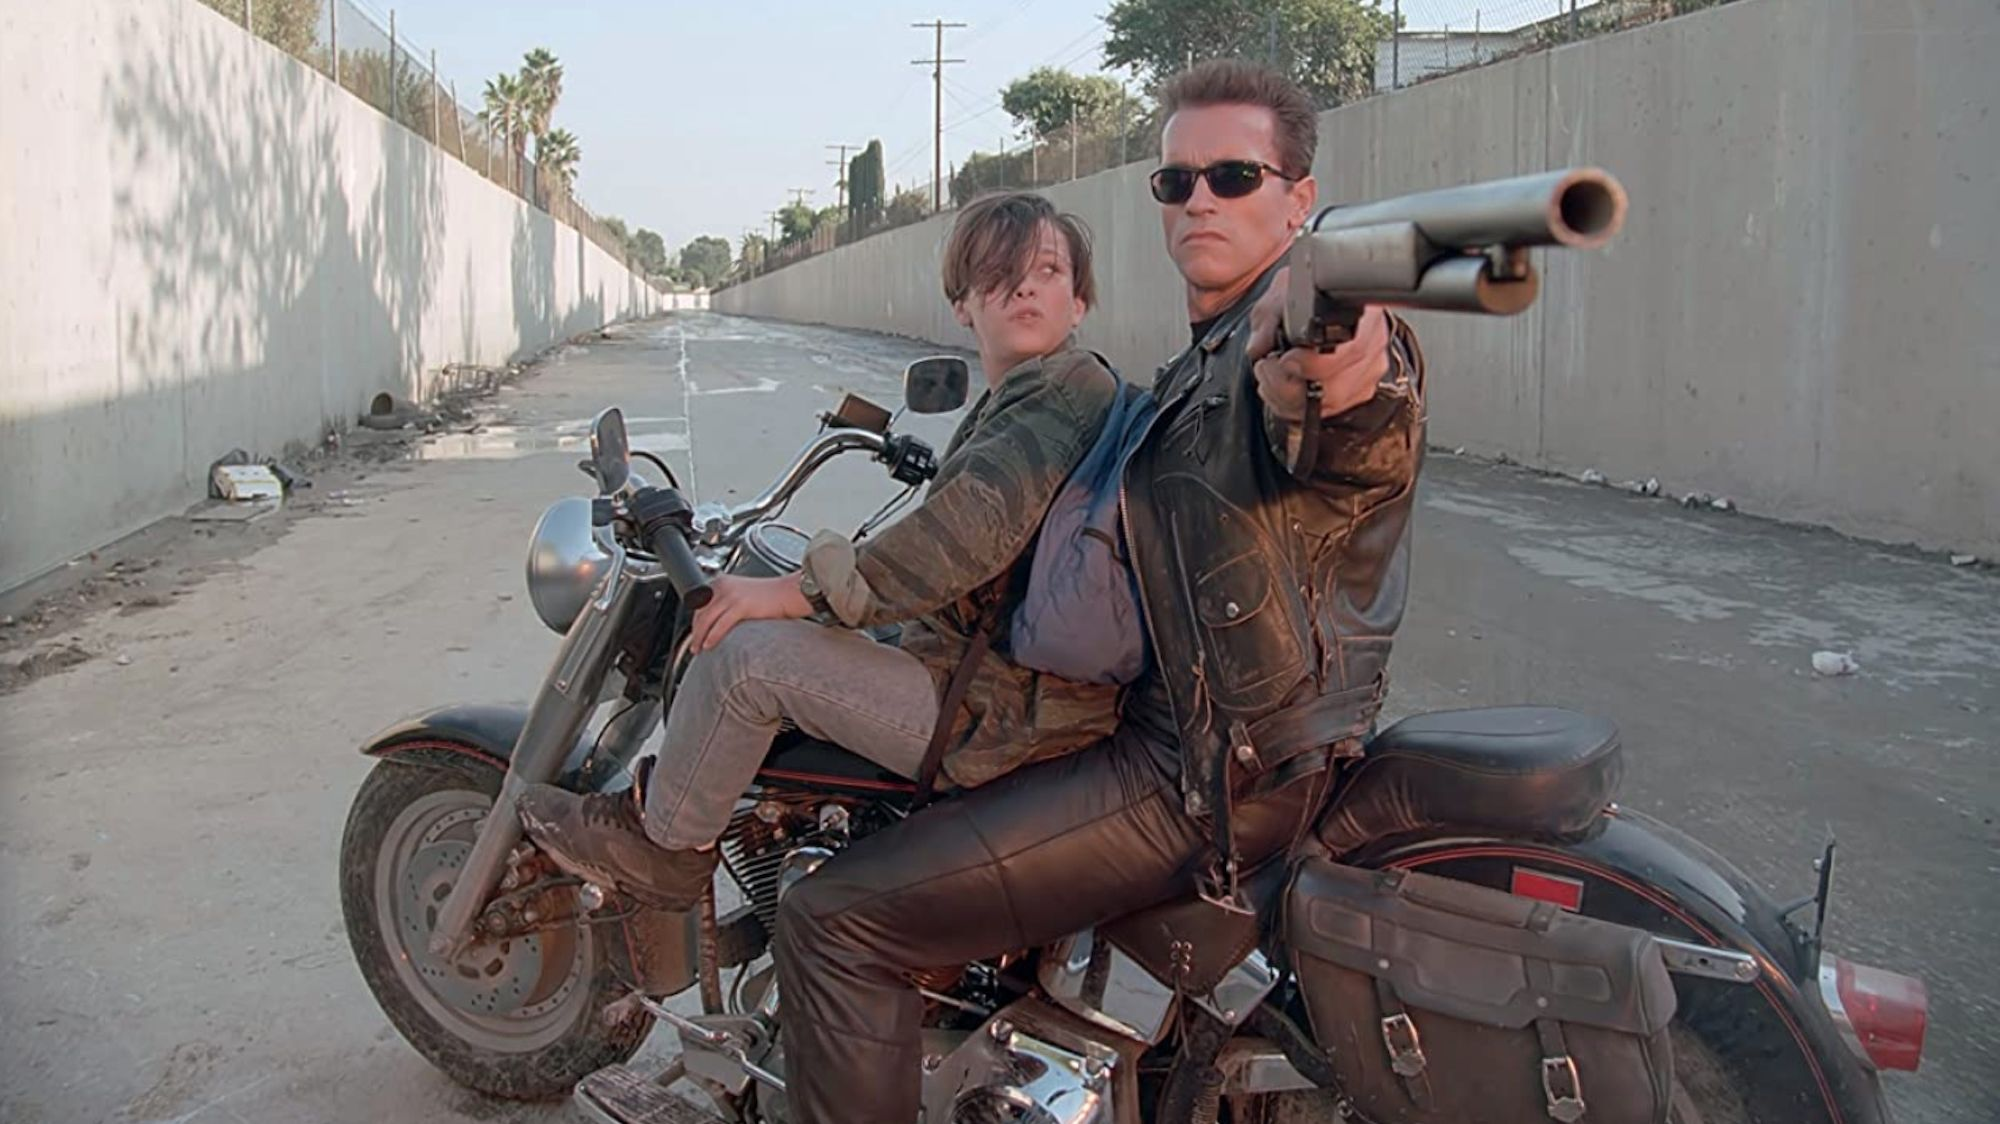 20 Facts About 'Terminator 2: Judgment Day'